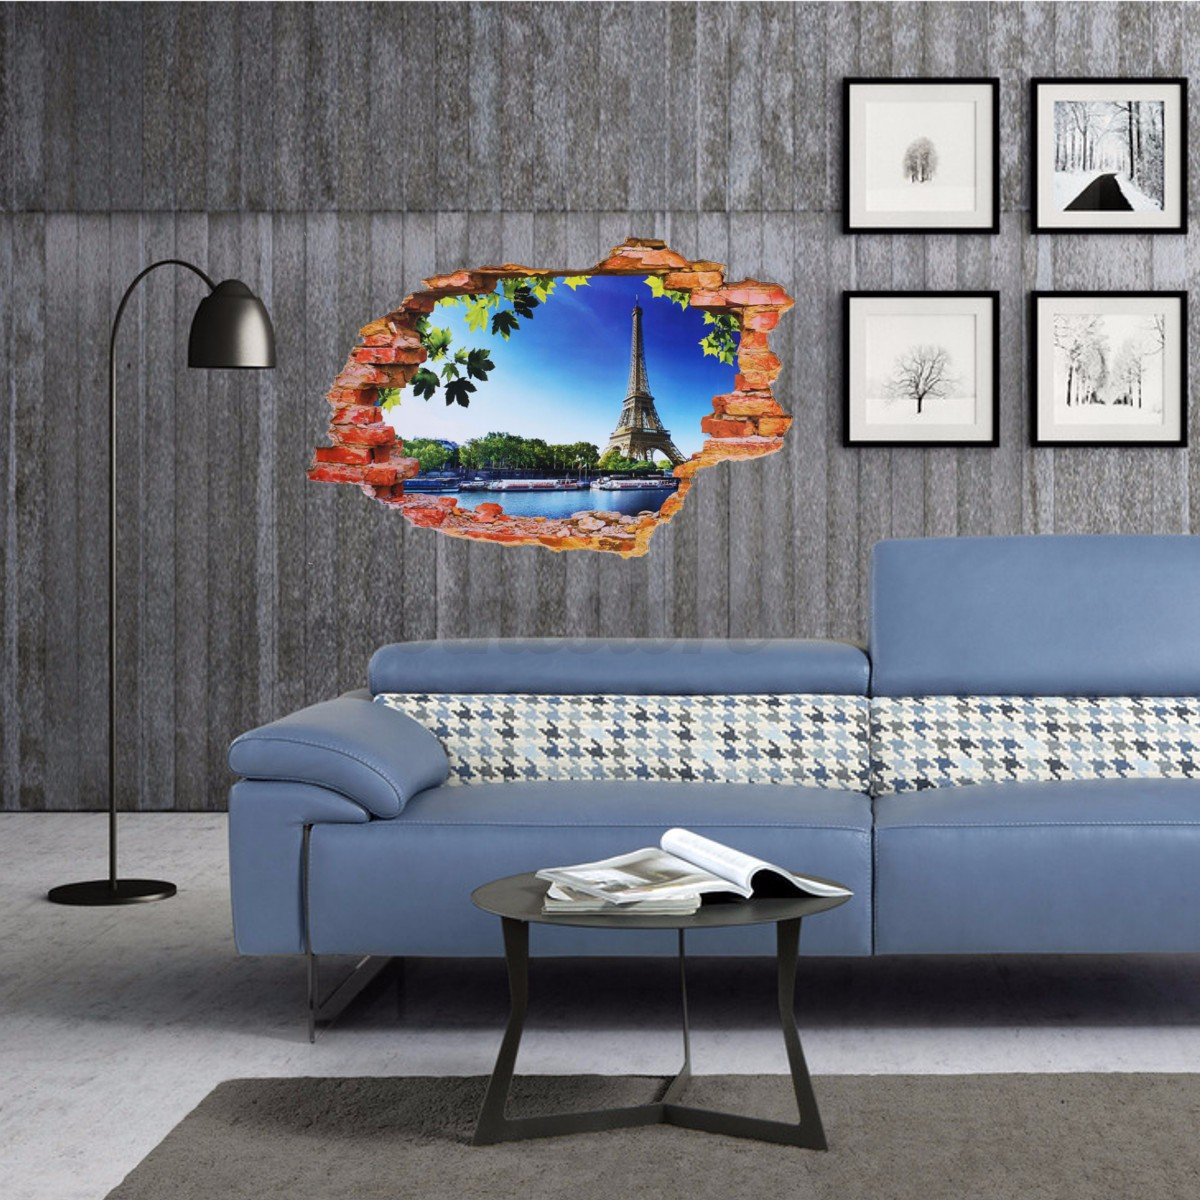 3d fenster landschaft wandtattoo wandsticker wandaufkleber kinderzimmer wandbild eur 3 97. Black Bedroom Furniture Sets. Home Design Ideas